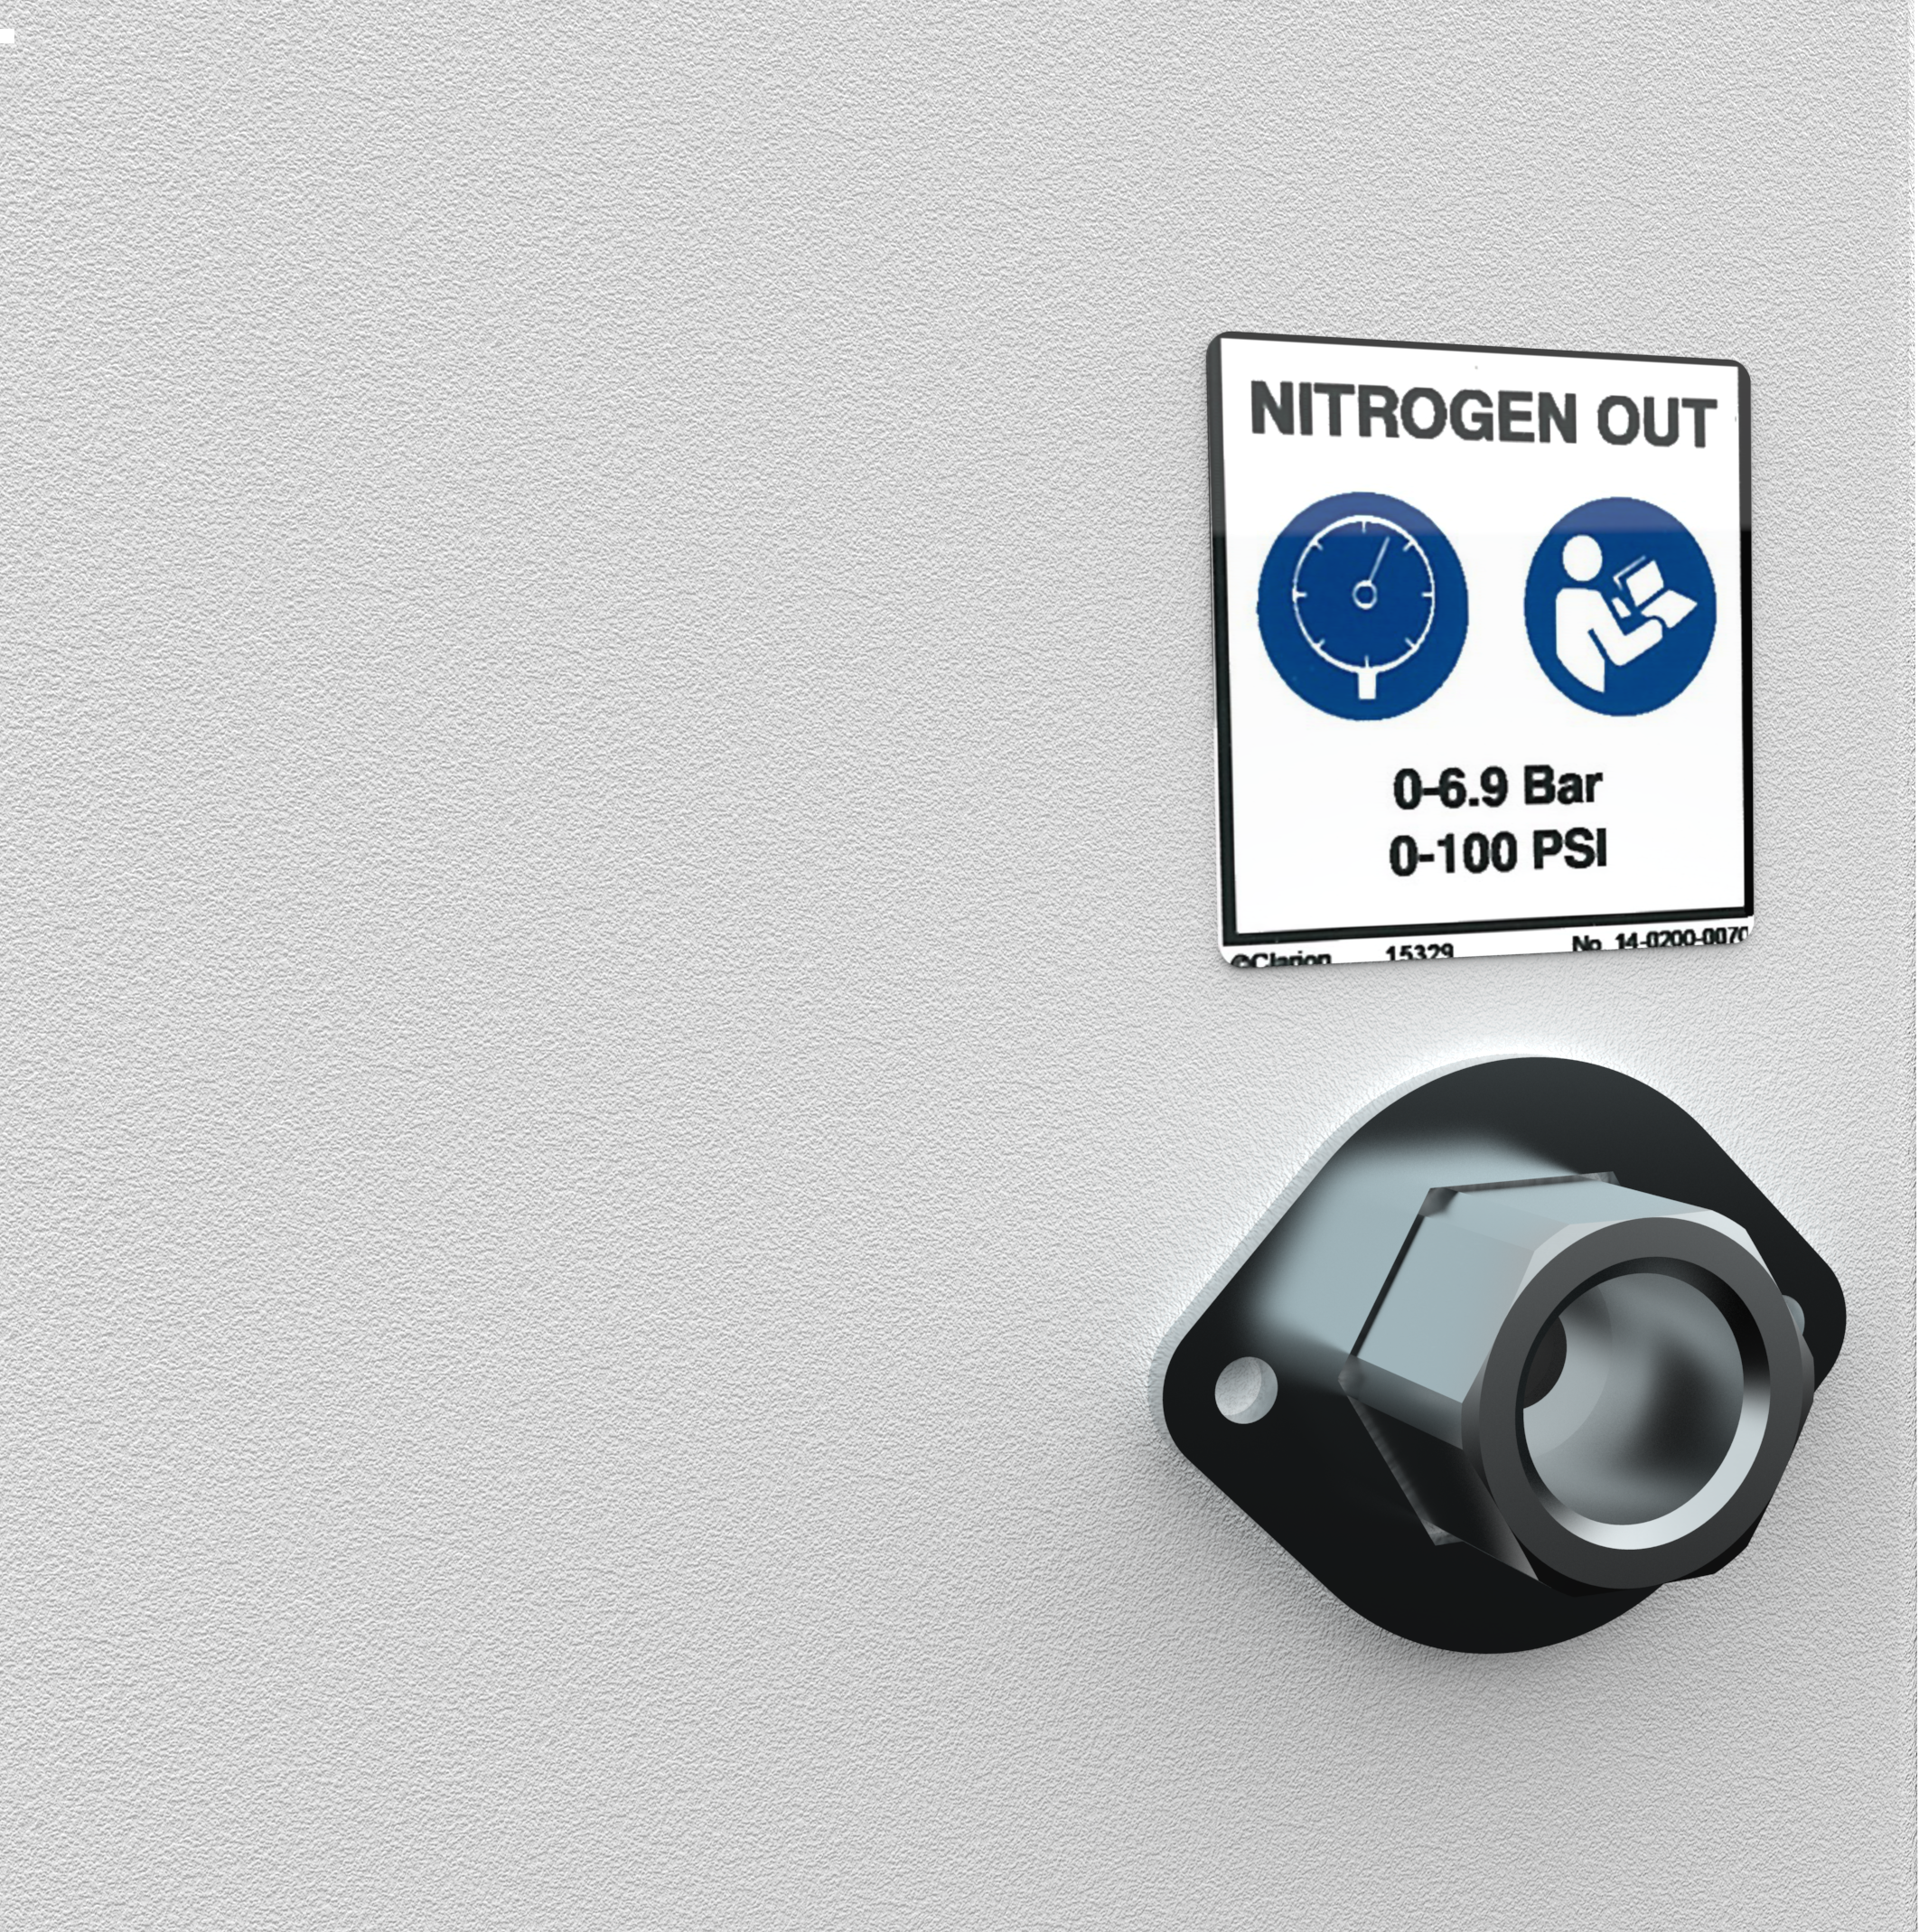 Nitrogen Outlet Port